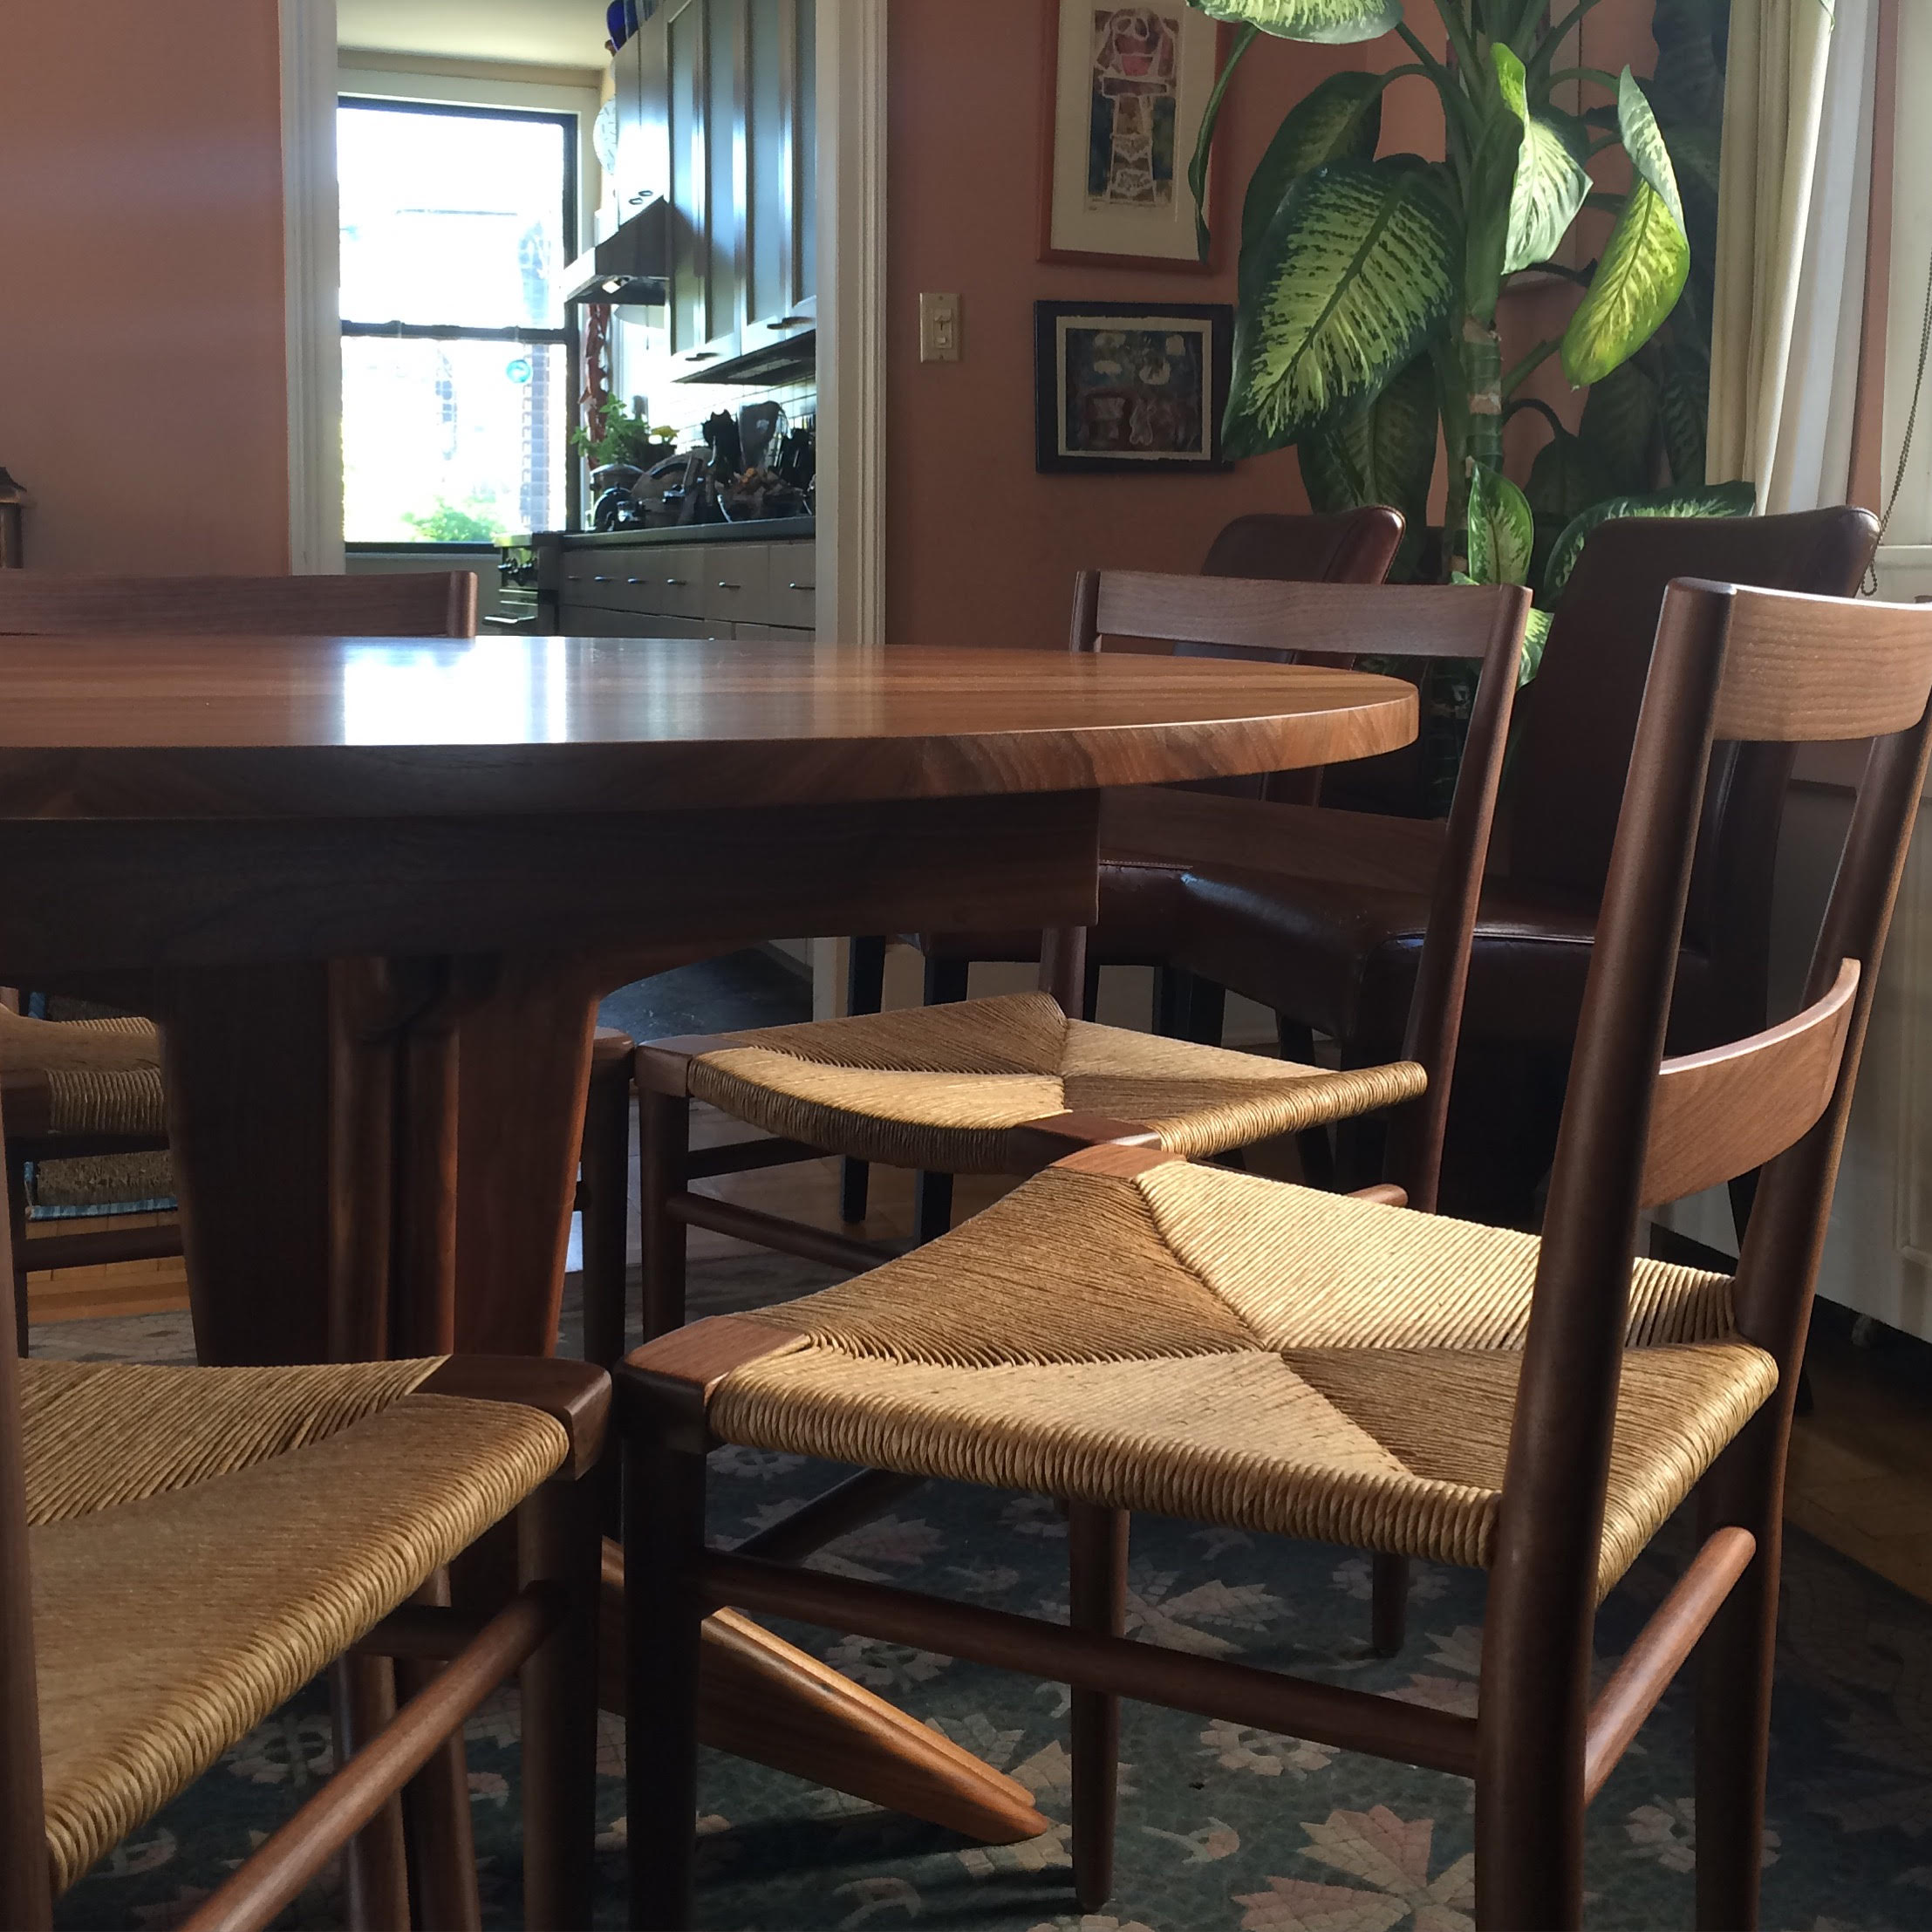 chairs-around-dining-table-for-post.jpg